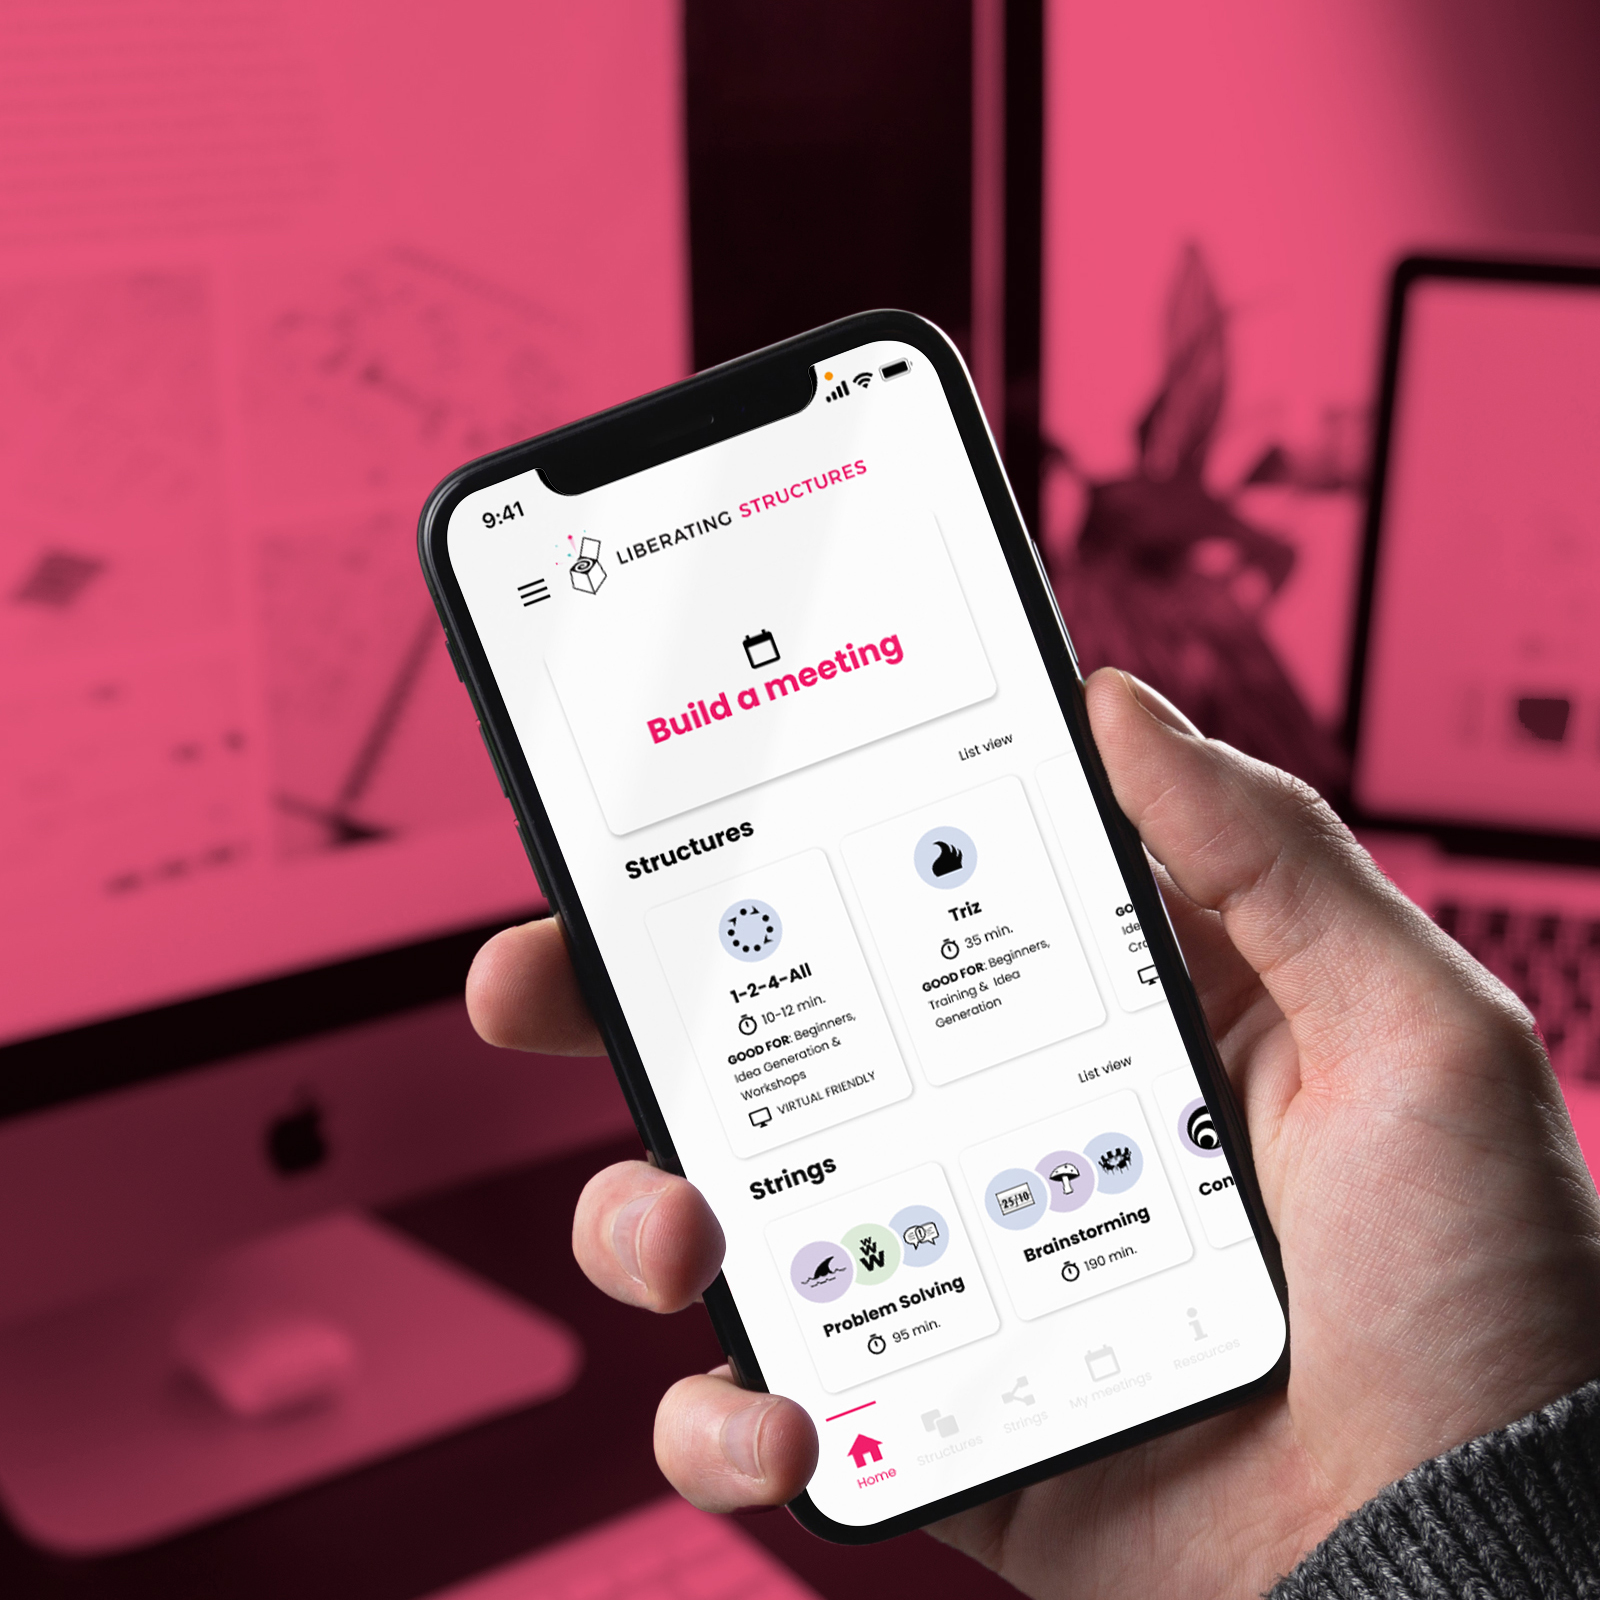 Pink monochrome photo background with hand holding iphone and app design